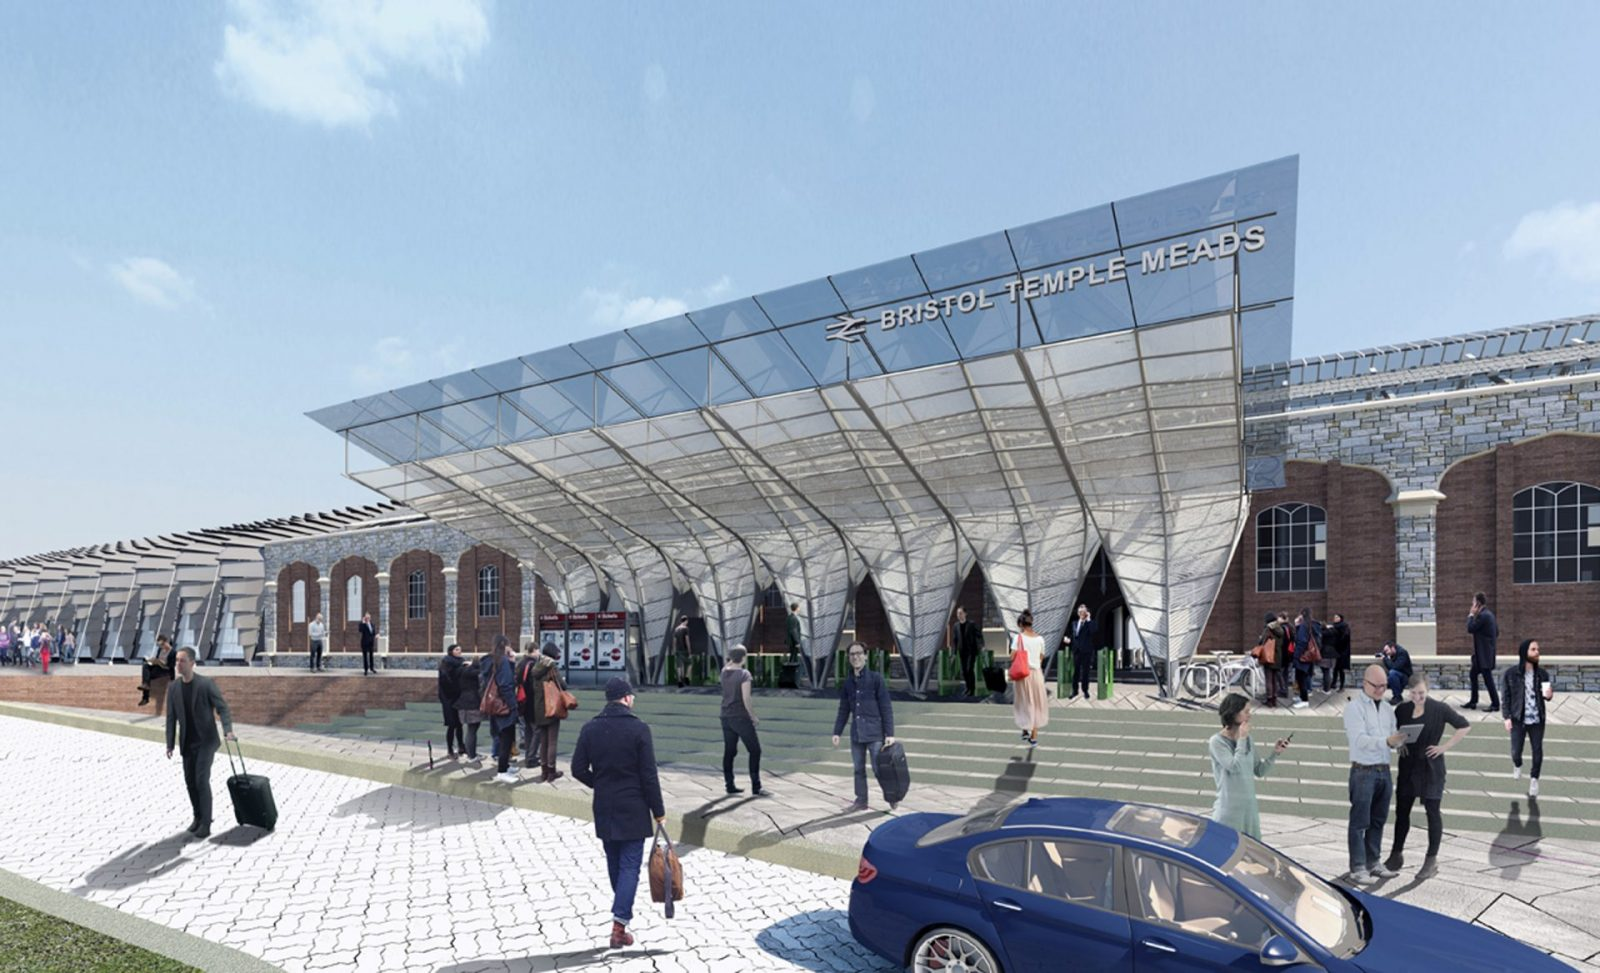 bristol temple meads regeneration london platform entrance canopy architects jersey architects1